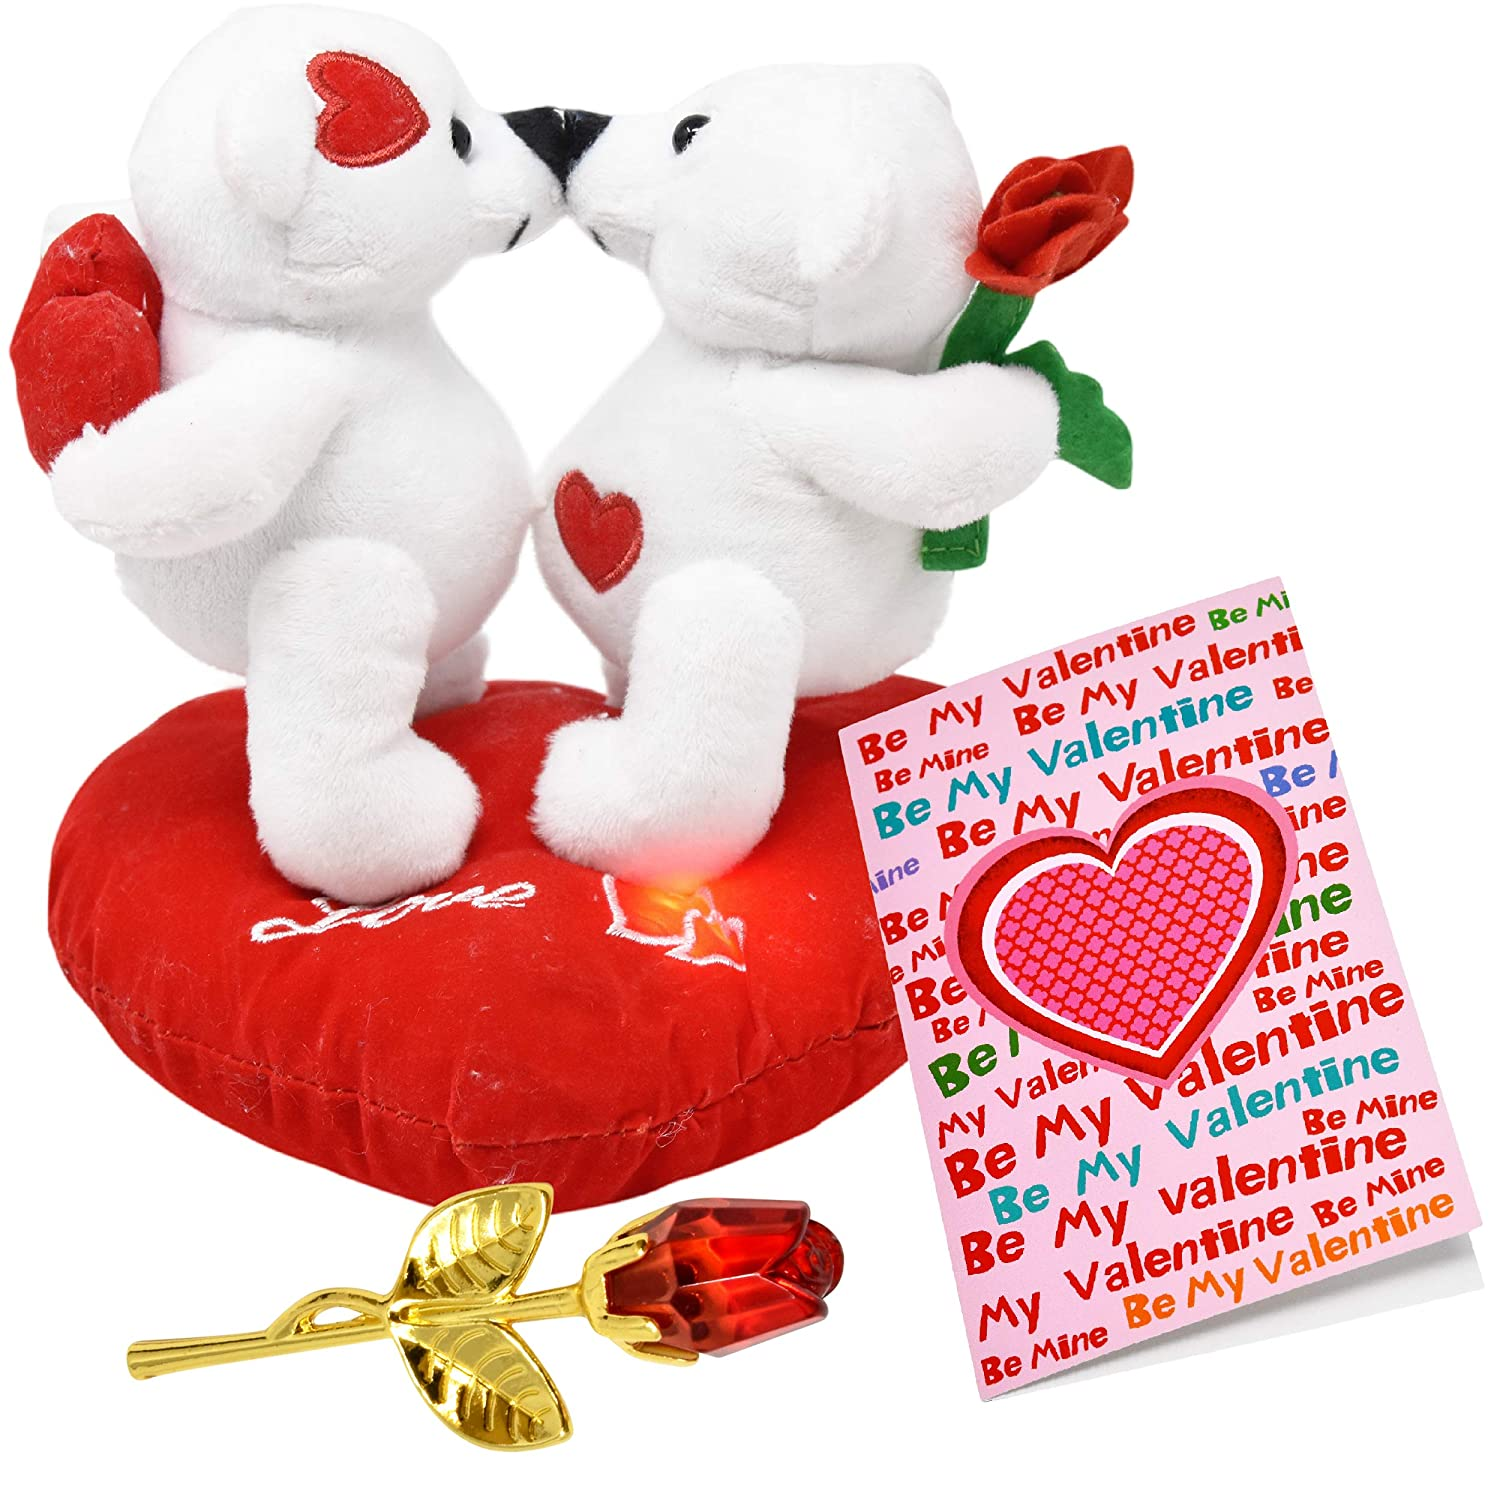 Valentine Bear Stuffed Teddy Plush Valentines Talking Kissing Love Bears on Heart Pillow, 3 Inch Forever Glass Rose in Gift Box and Valentine Card for Her ...